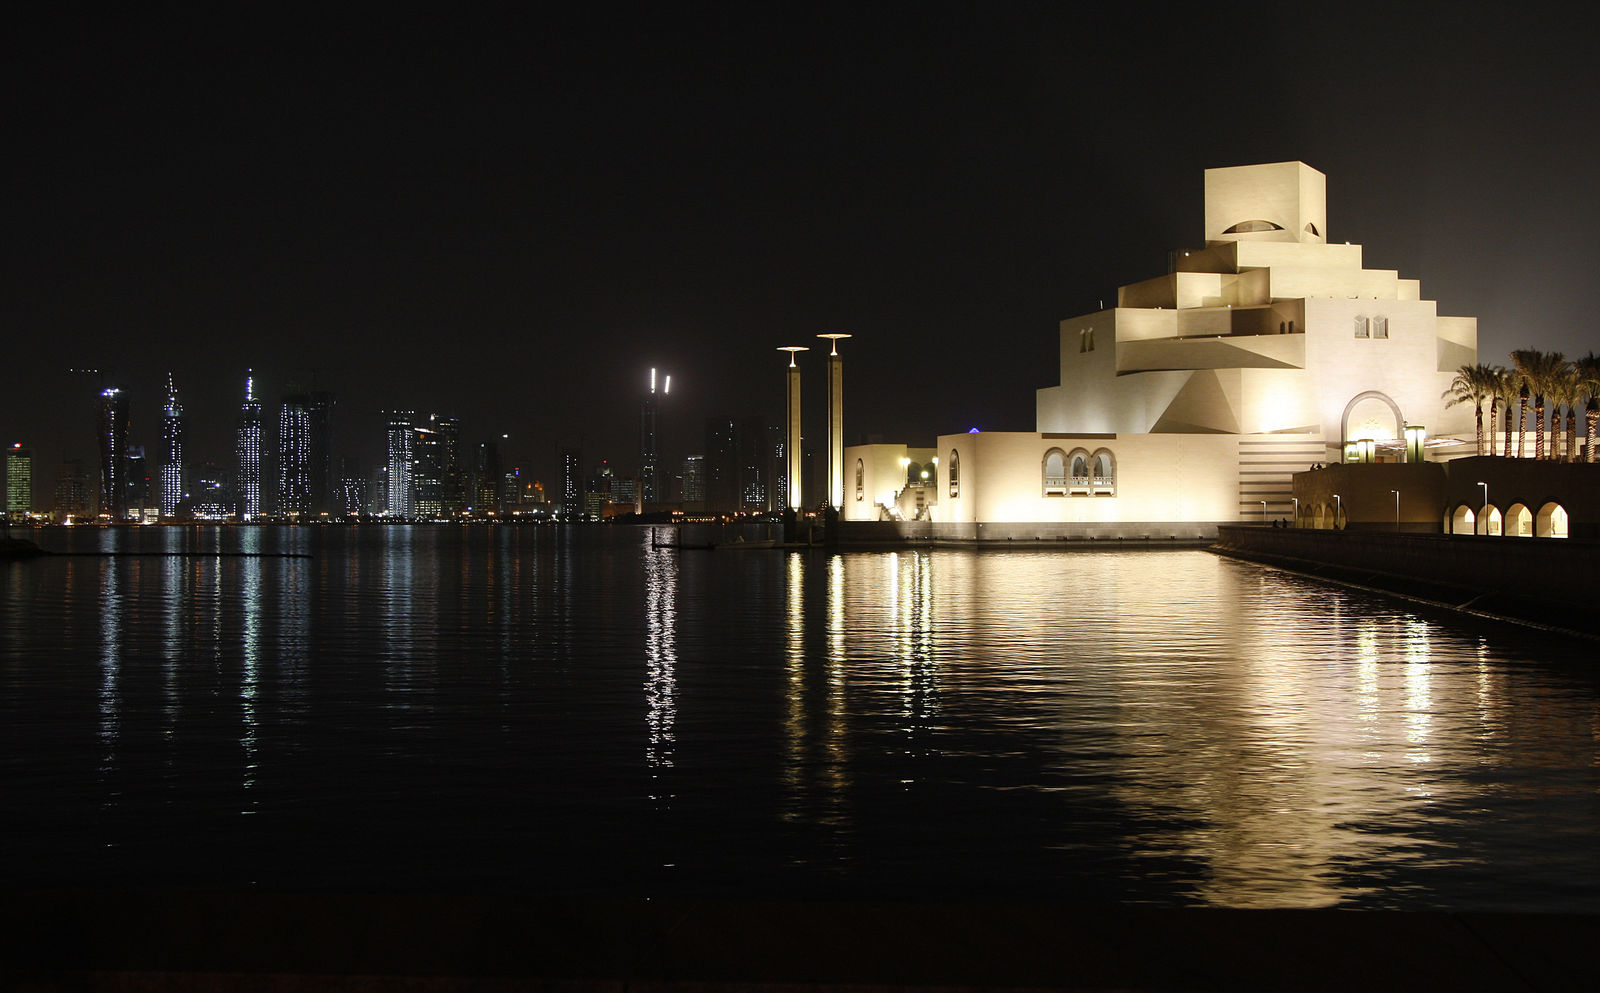 FILE - This Dec. 1, 2008, file photo shows The Museum of Islamic Art, foreground, designed by American architect I.M. Pei, and the skyline of Doha, Qatar. Pei, the globe-trotting architect who revived the Louvre museum in Paris with a giant glass pyramid and captured the spirit of rebellion at the multi-shaped Rock and Roll Hall of Fame, has died at age 102, a spokesman confirmed Thursday, May 16, 2019. (AP Photo/Hassan Ammar, File)